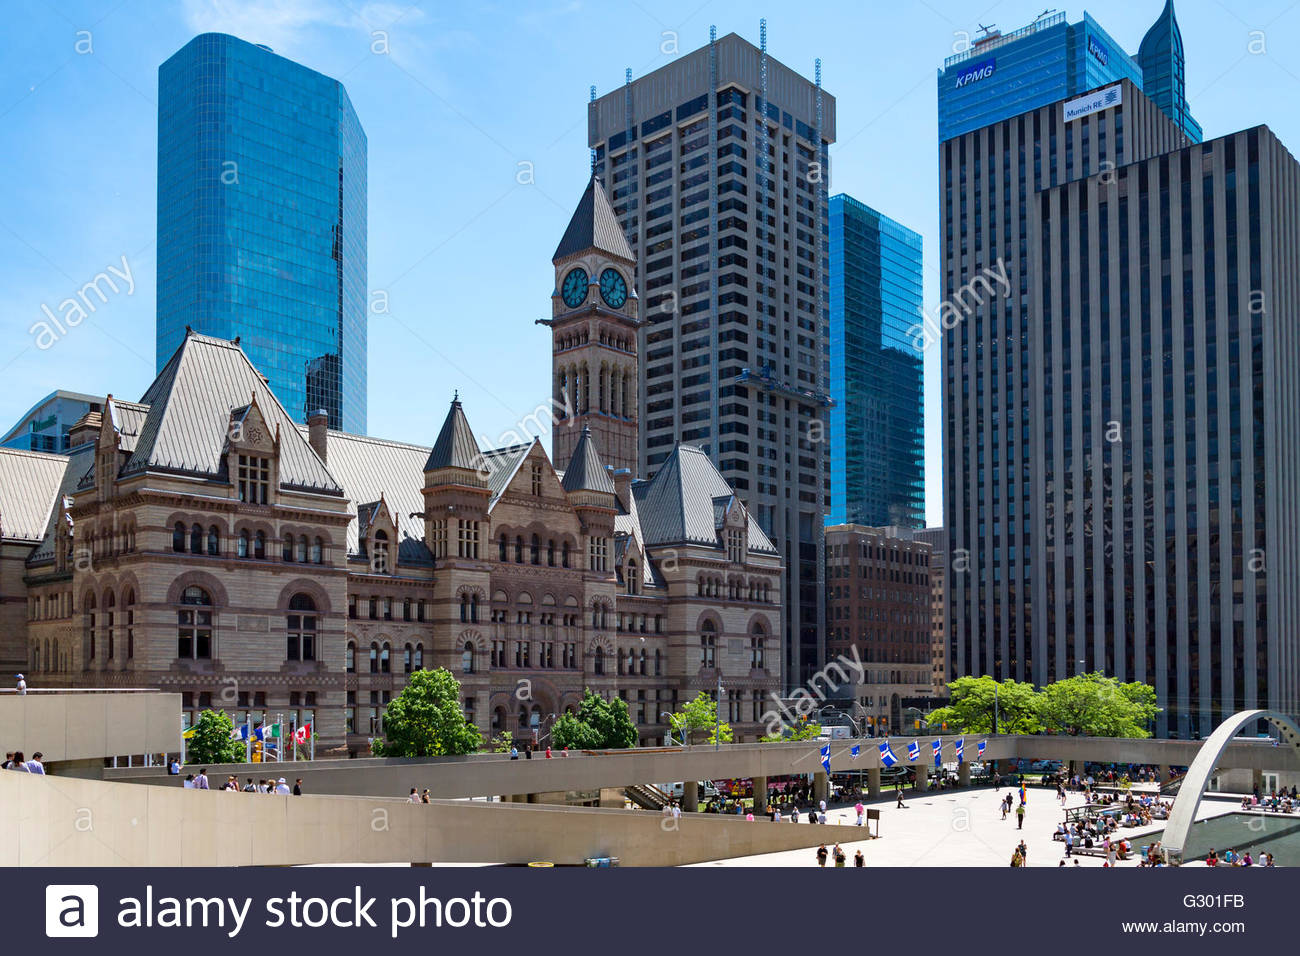 Aerial view of Old City Hall. The Richardson Romanesque Revival building is part of Toronto heritage. Image taken - Stock Image